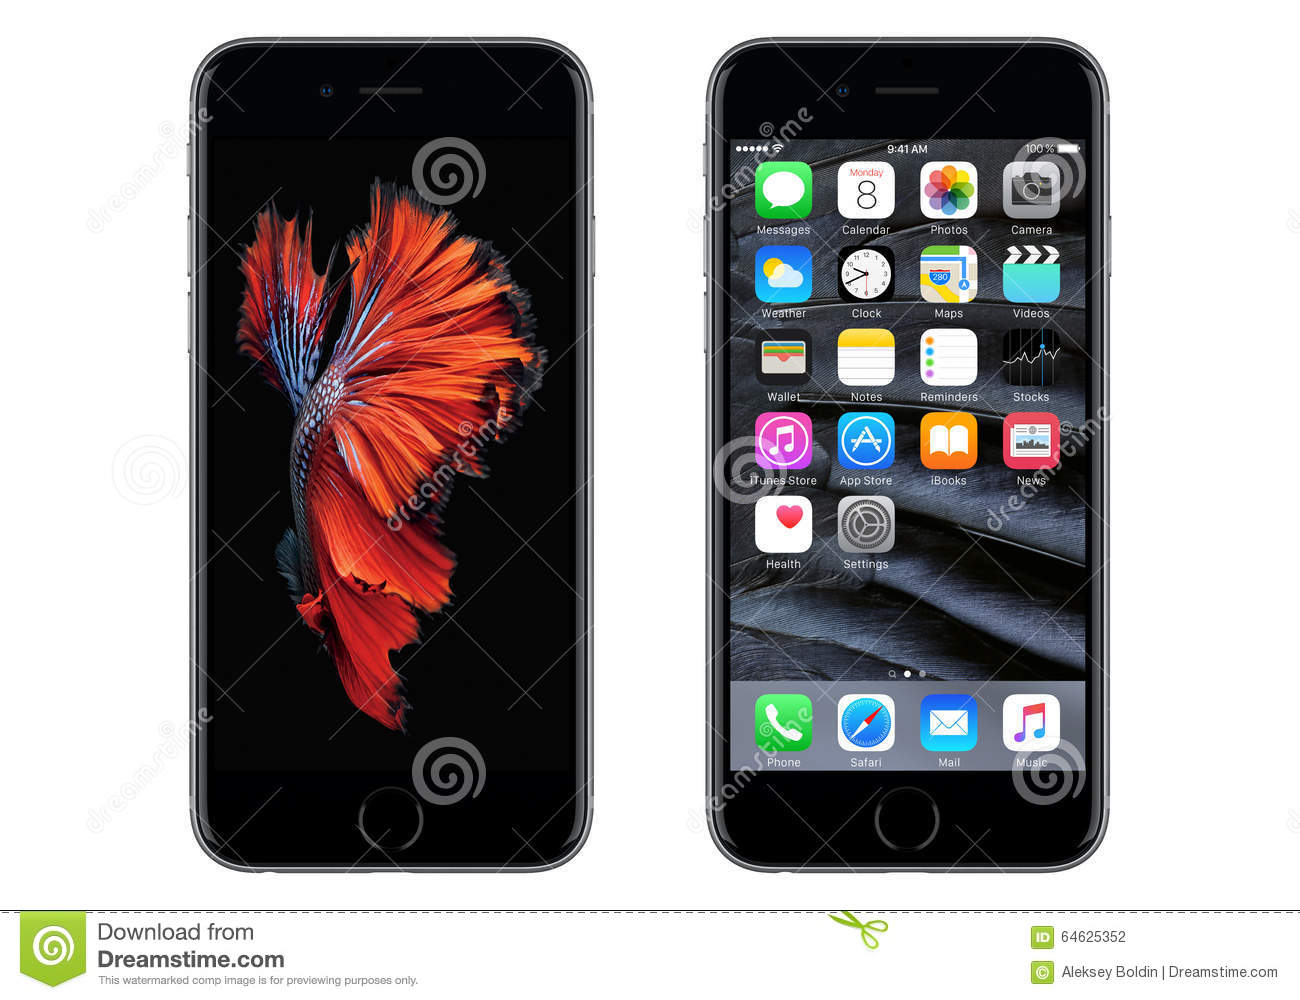 Black Apple IPhone 6S With IOS 9 And Dynamic Wallpaper